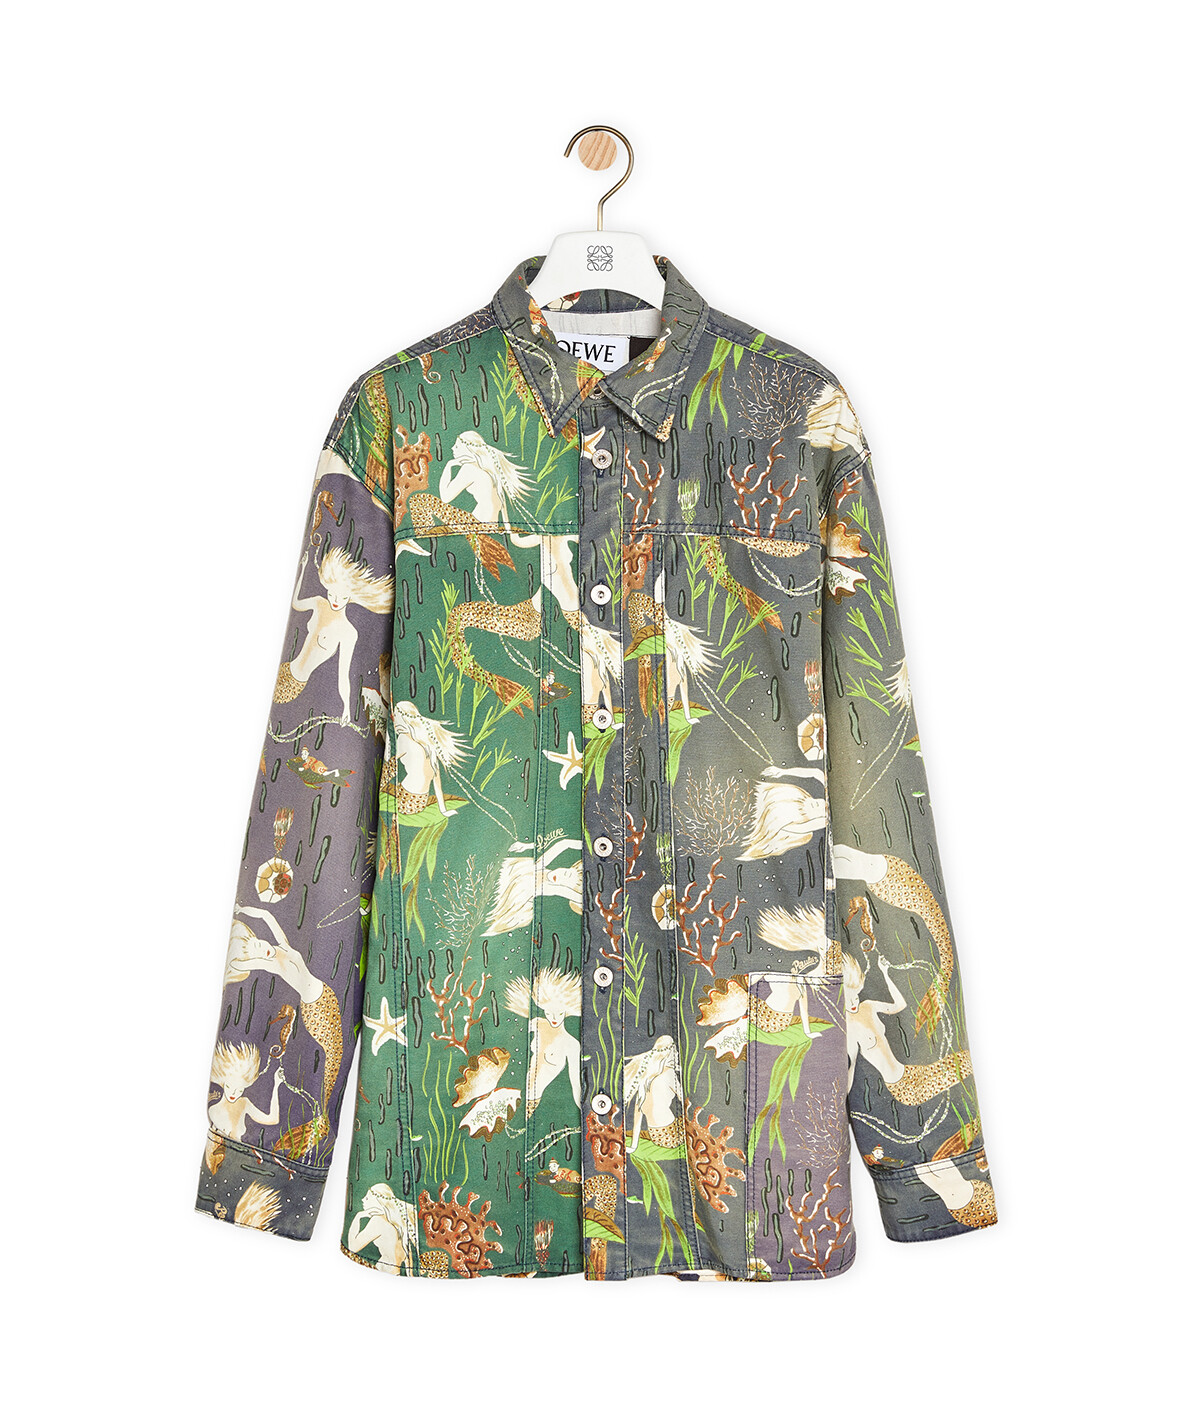 LOEWE Oversize Shirt In Mermaid Cotton Multicolor front